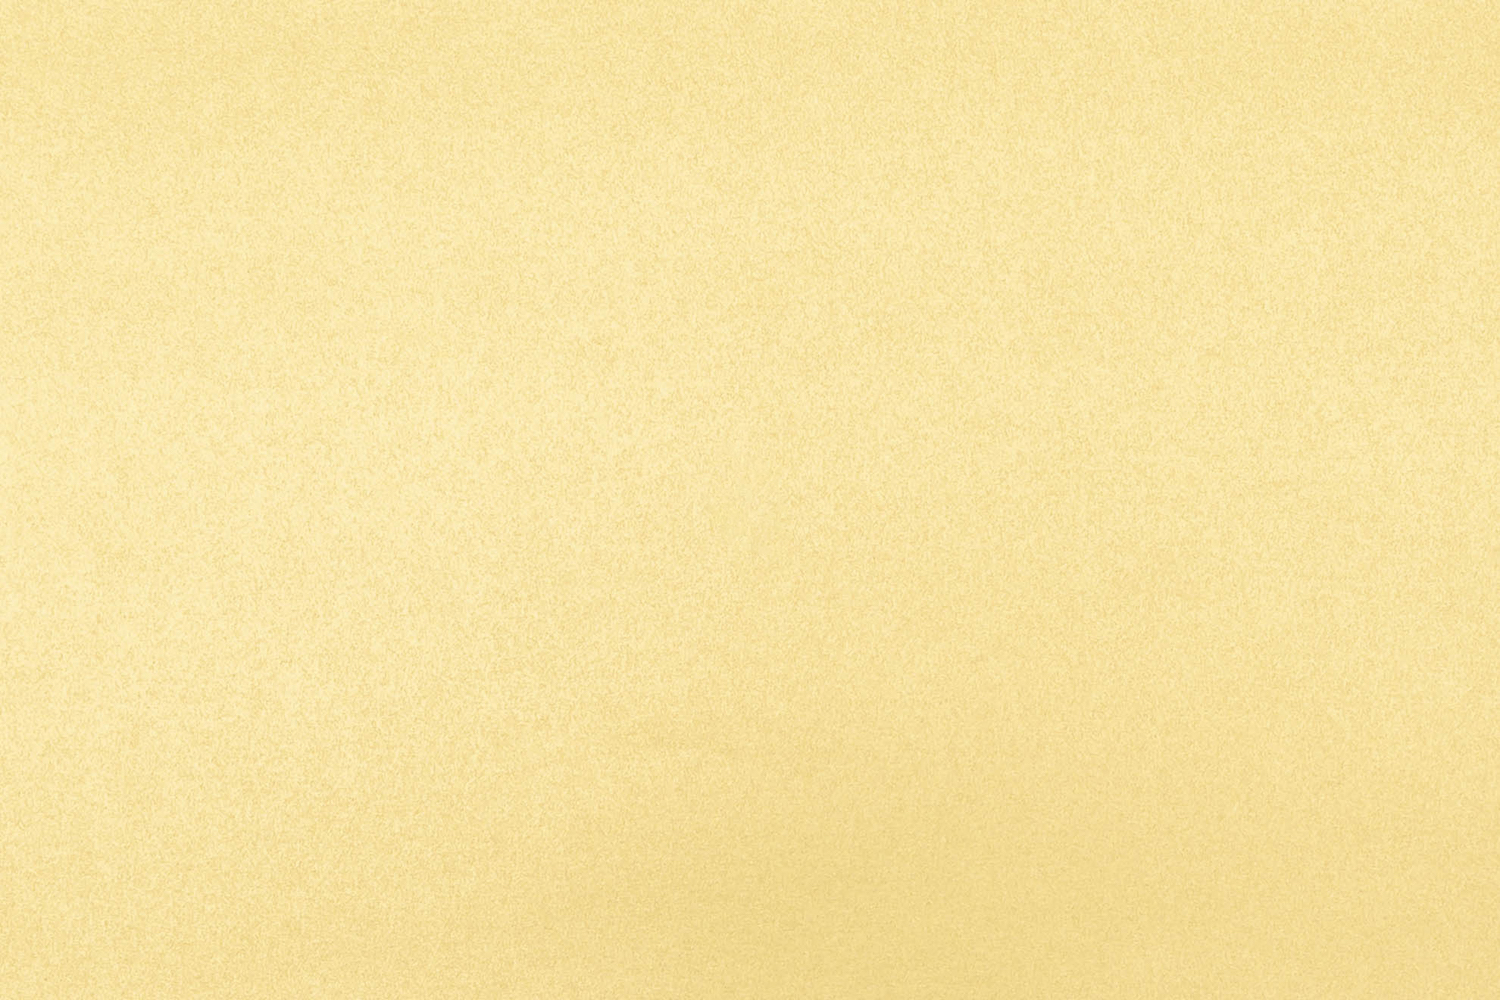 Set of 9 texture paper background example image 7